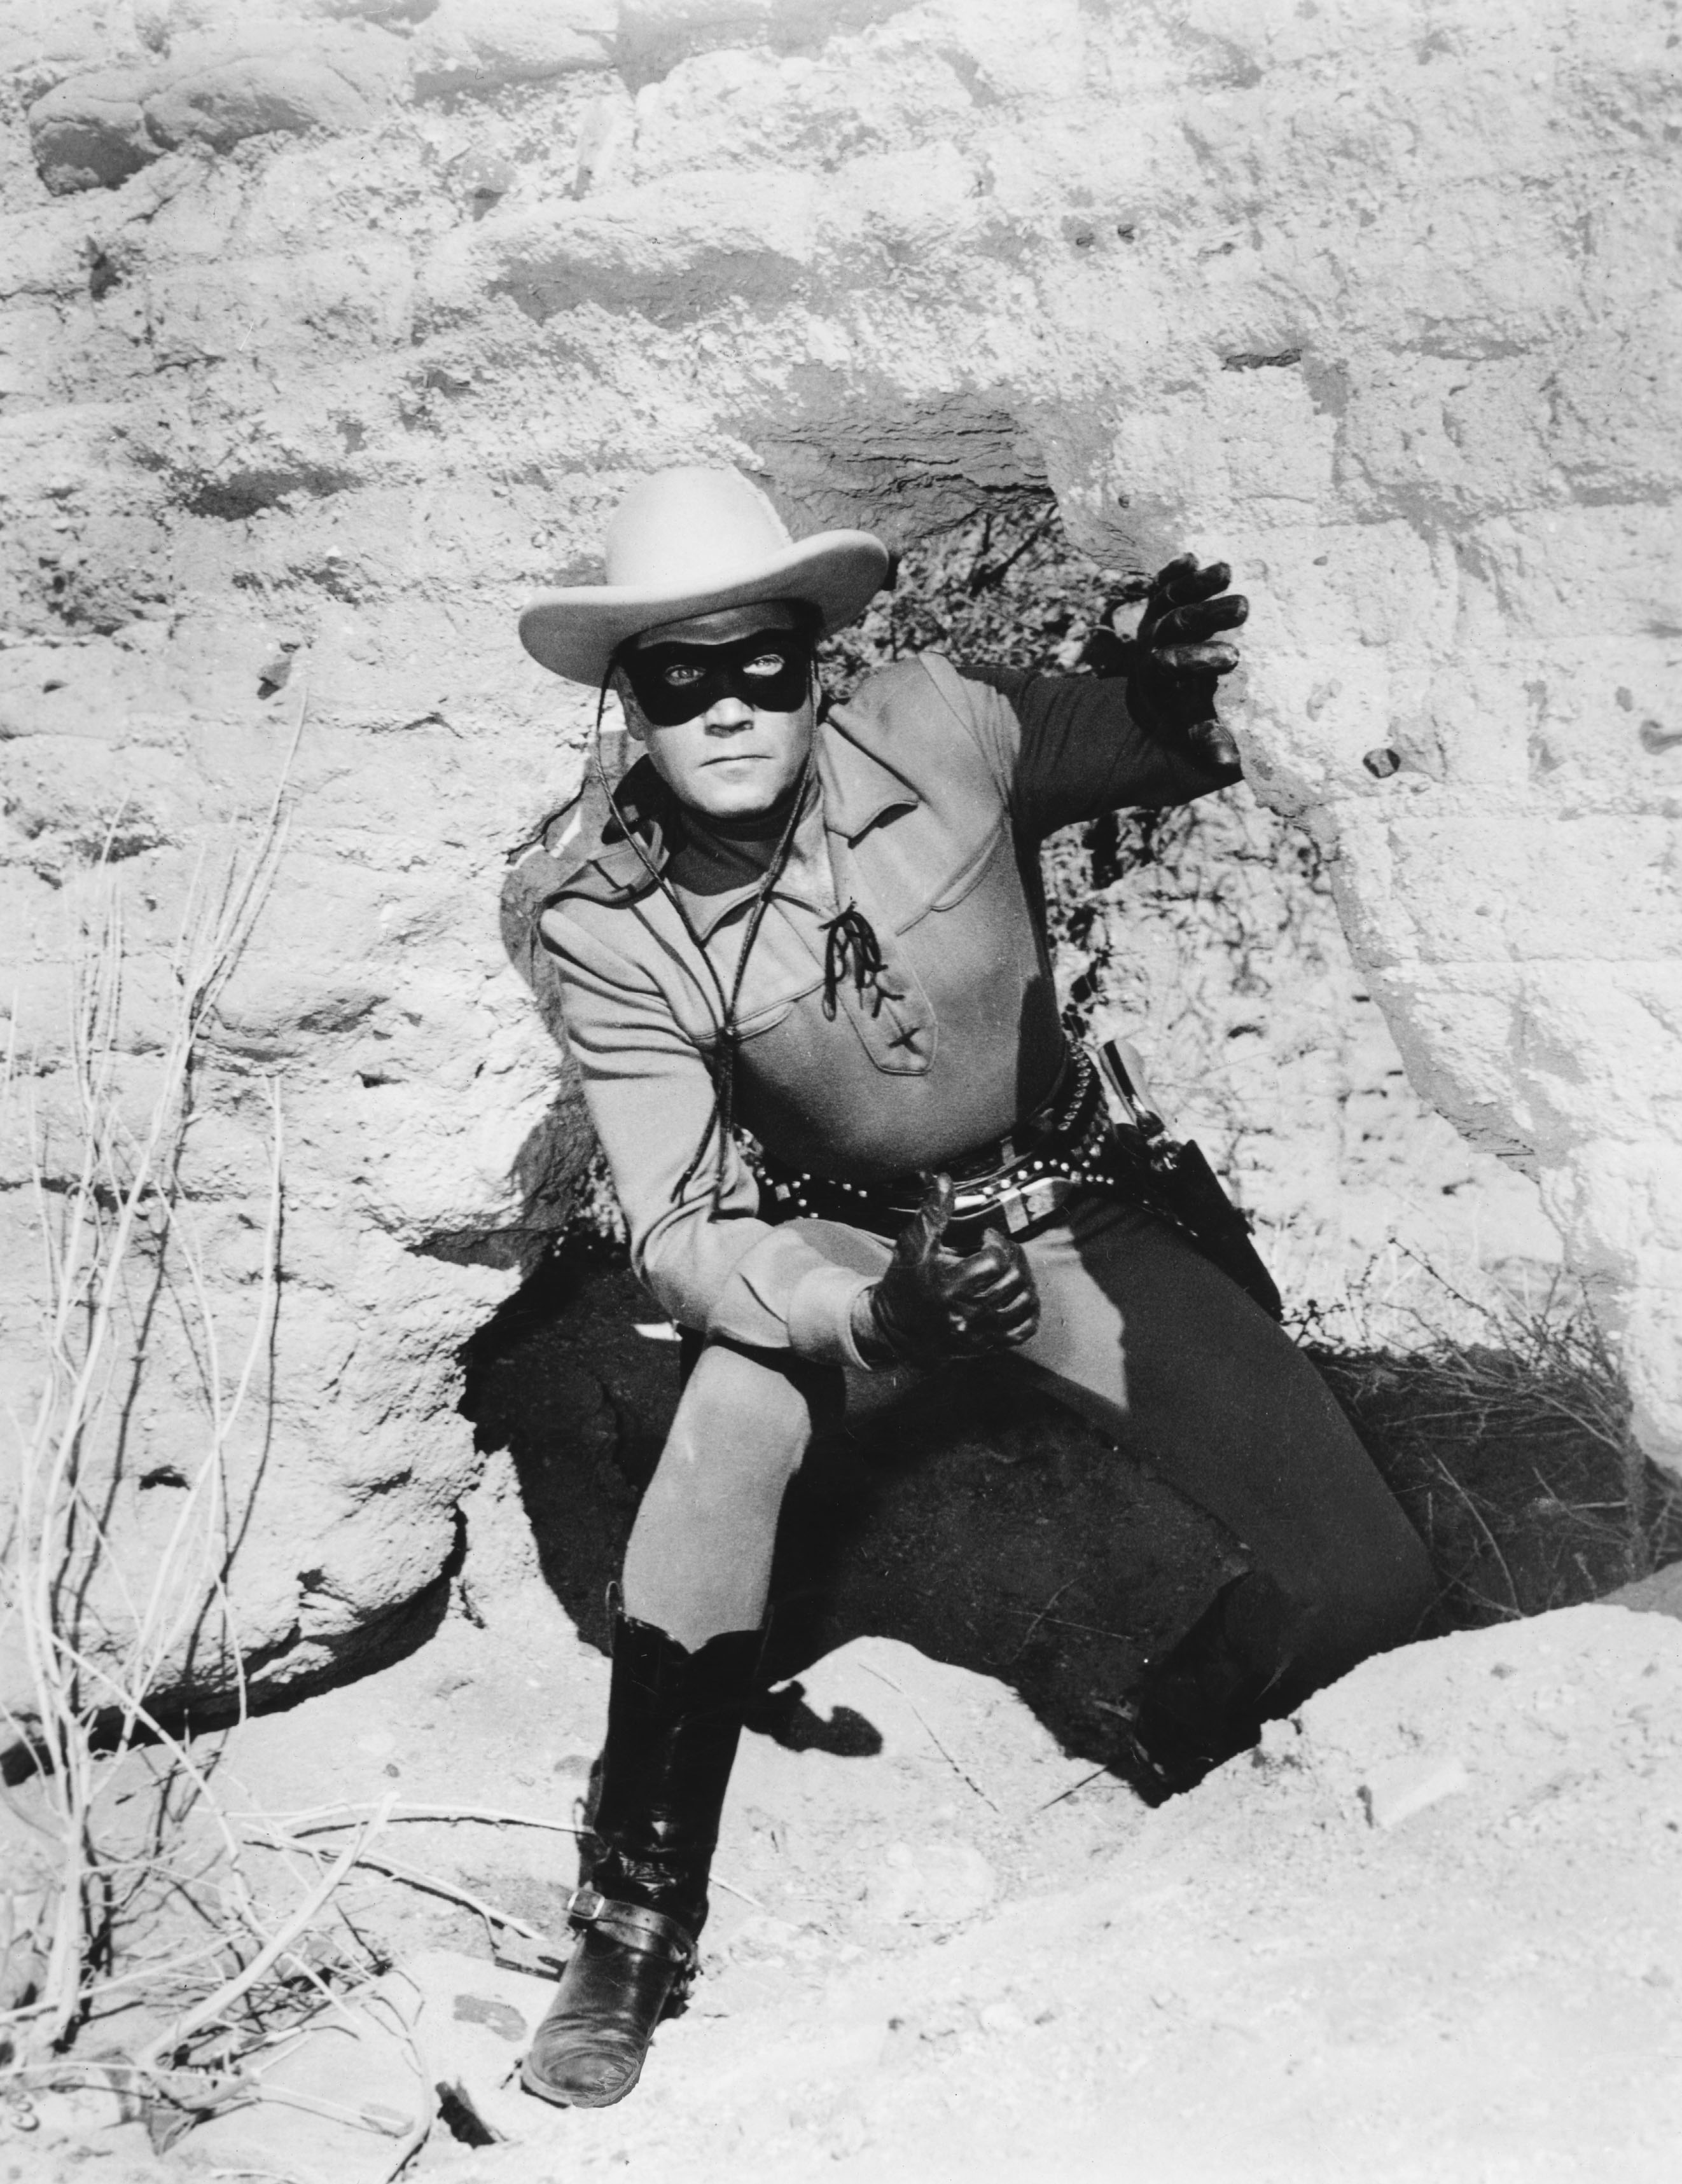 Clayton Moore's Daughter Reveals 'Lone Ranger' Role Gave Her Dad a 'Purpose'